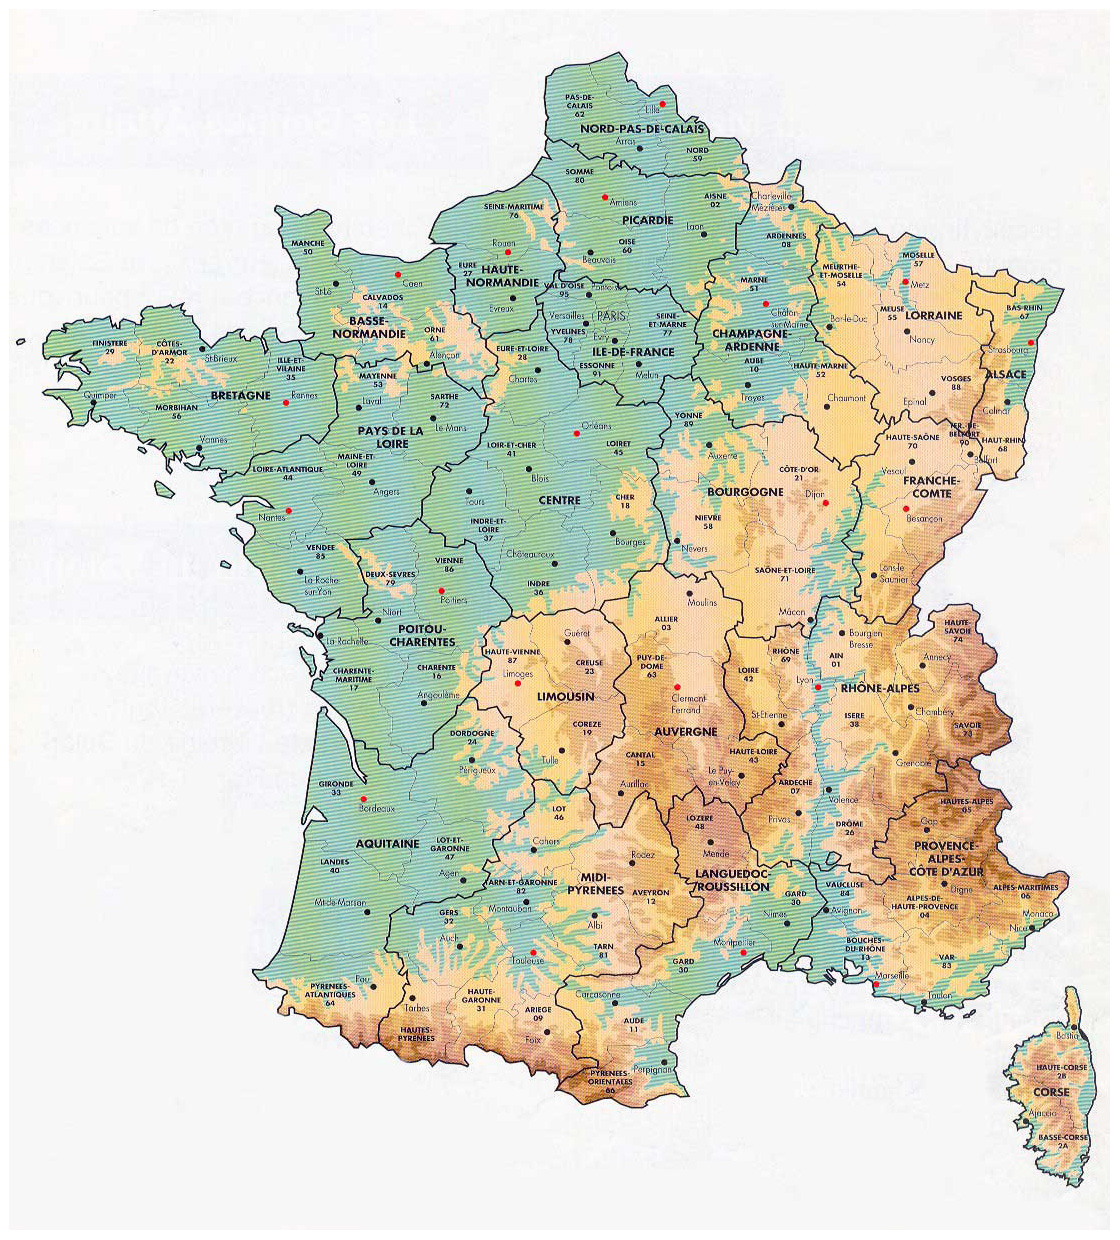 Detailed elevation map of France with administrative divisions